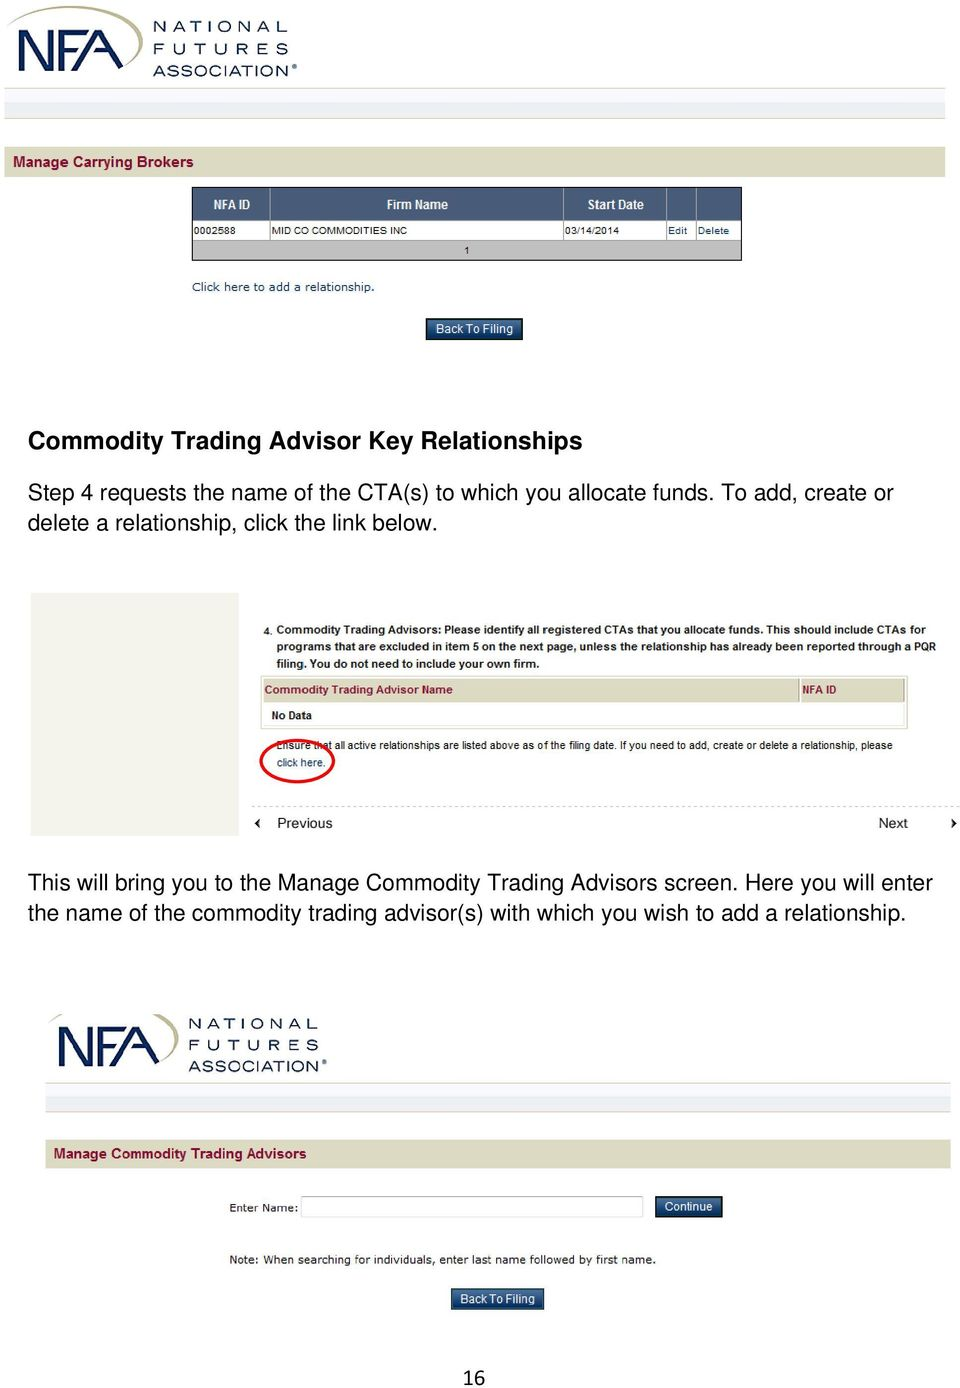 This will bring you to the Manage Commodity Trading Advisors screen.